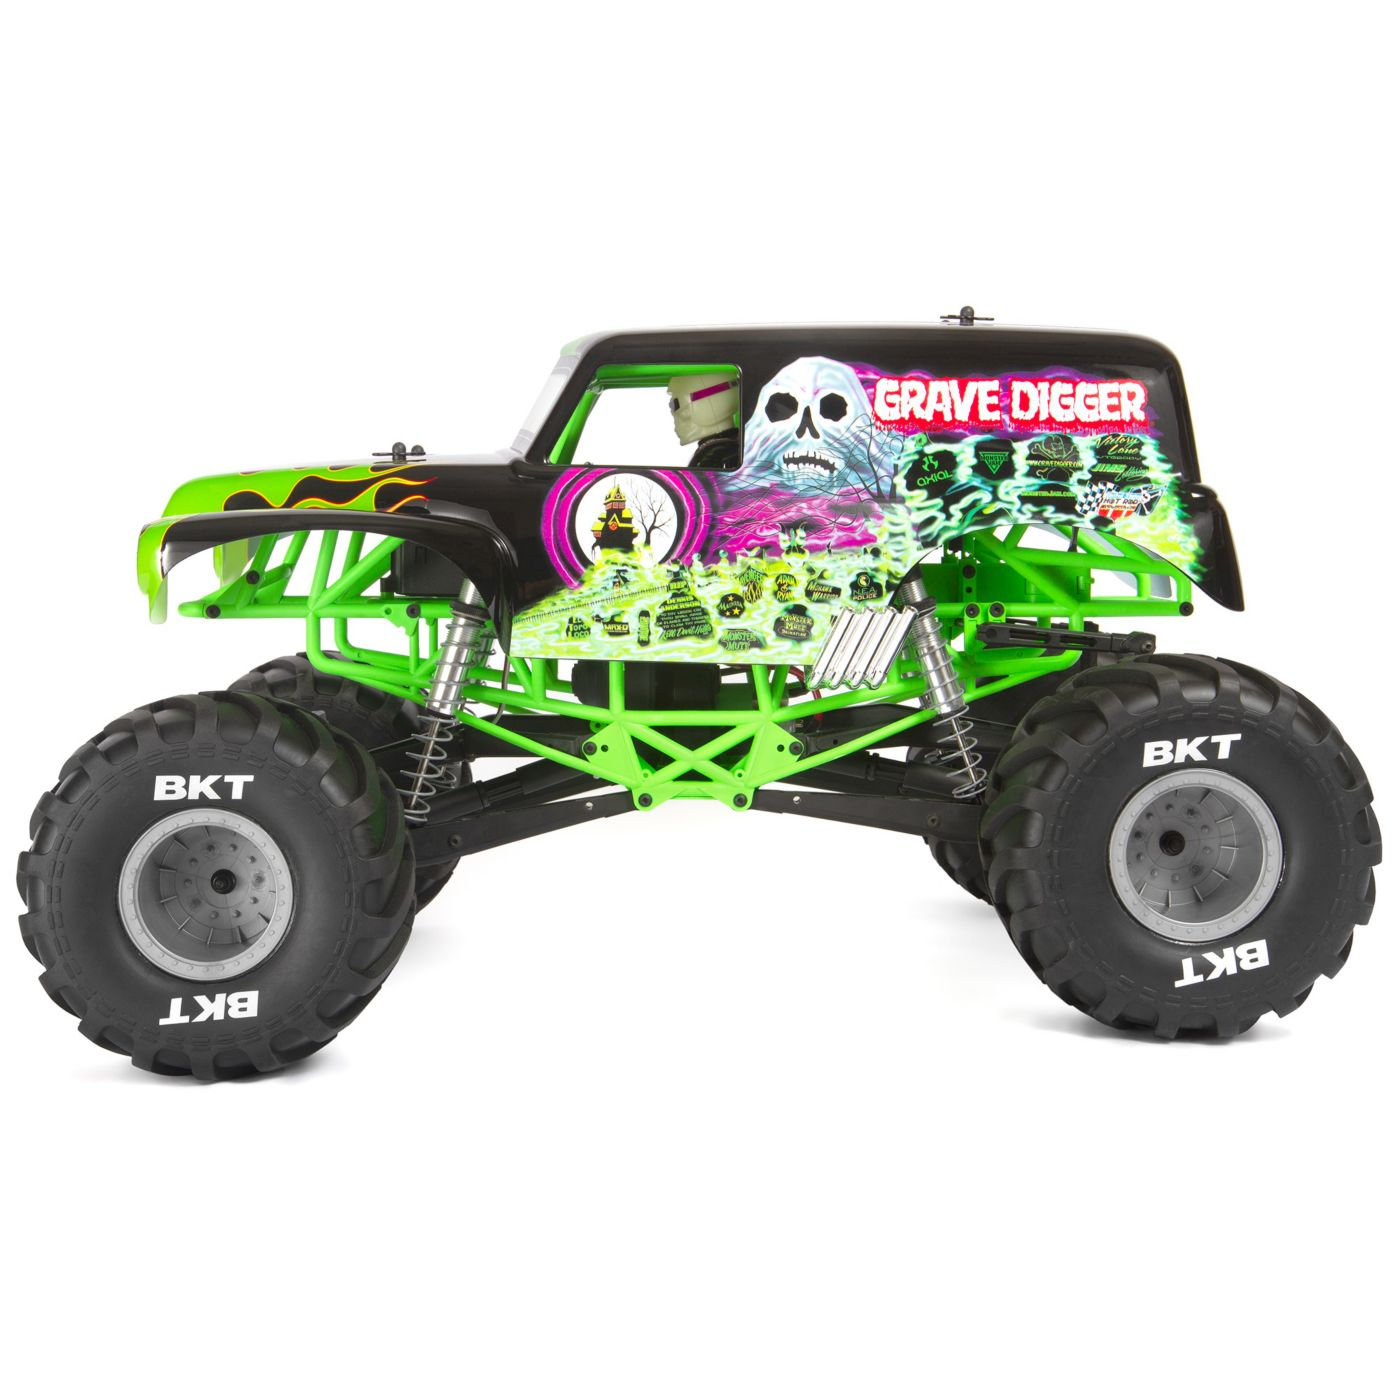 Axial SMT10 Grave Digger RTR Monster Truck - Side